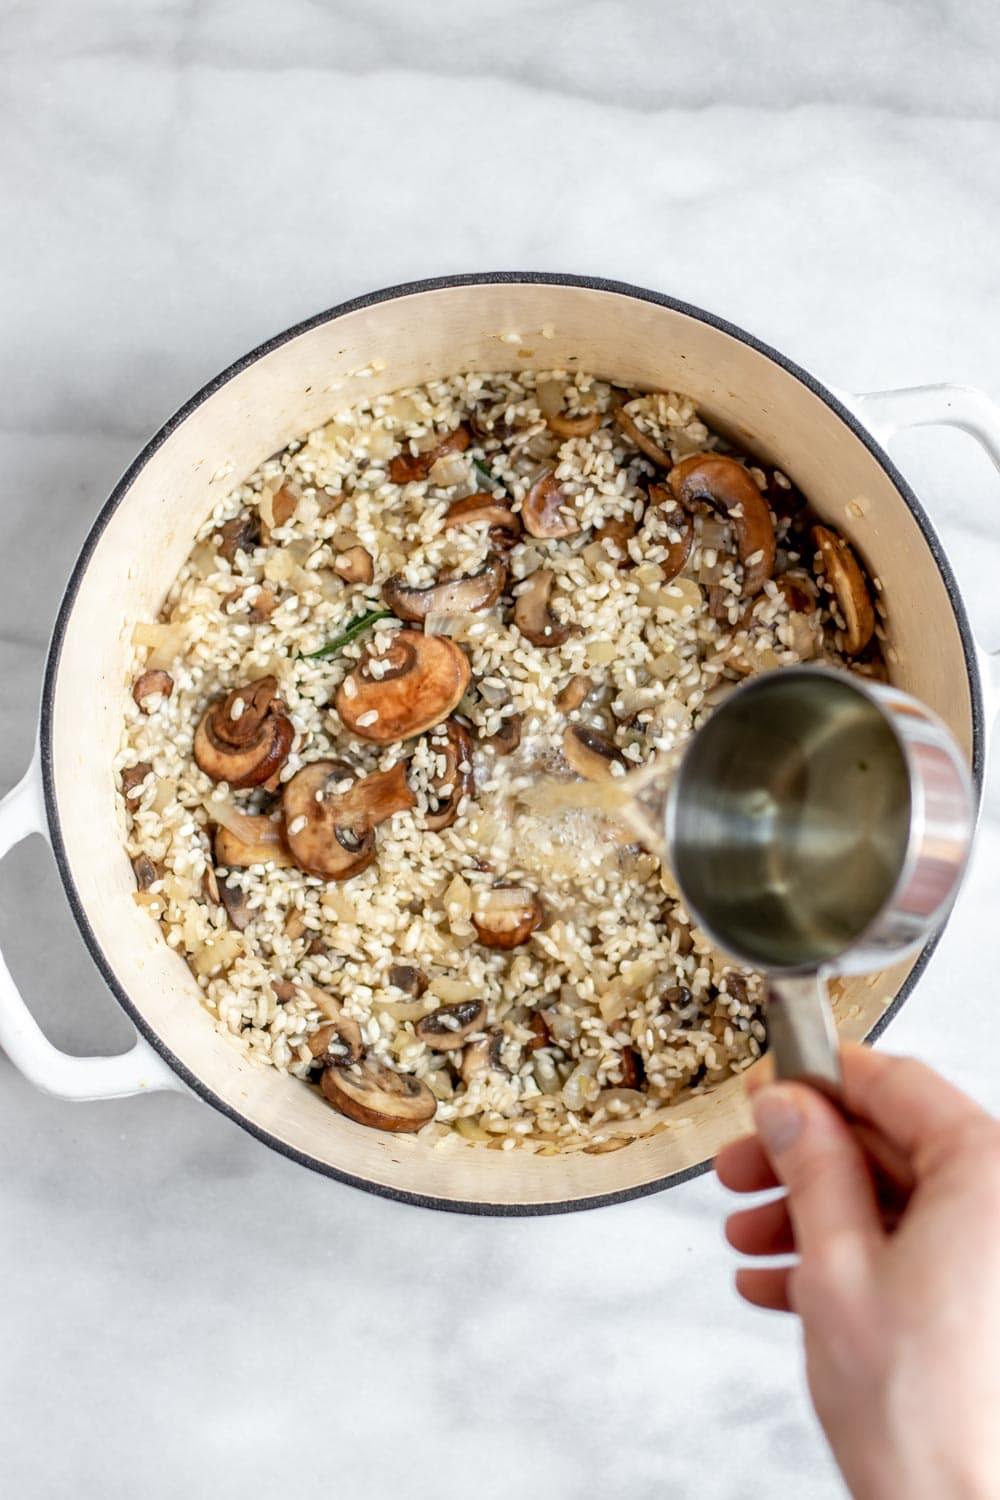 Pouring white wine into the pot with the risotto.